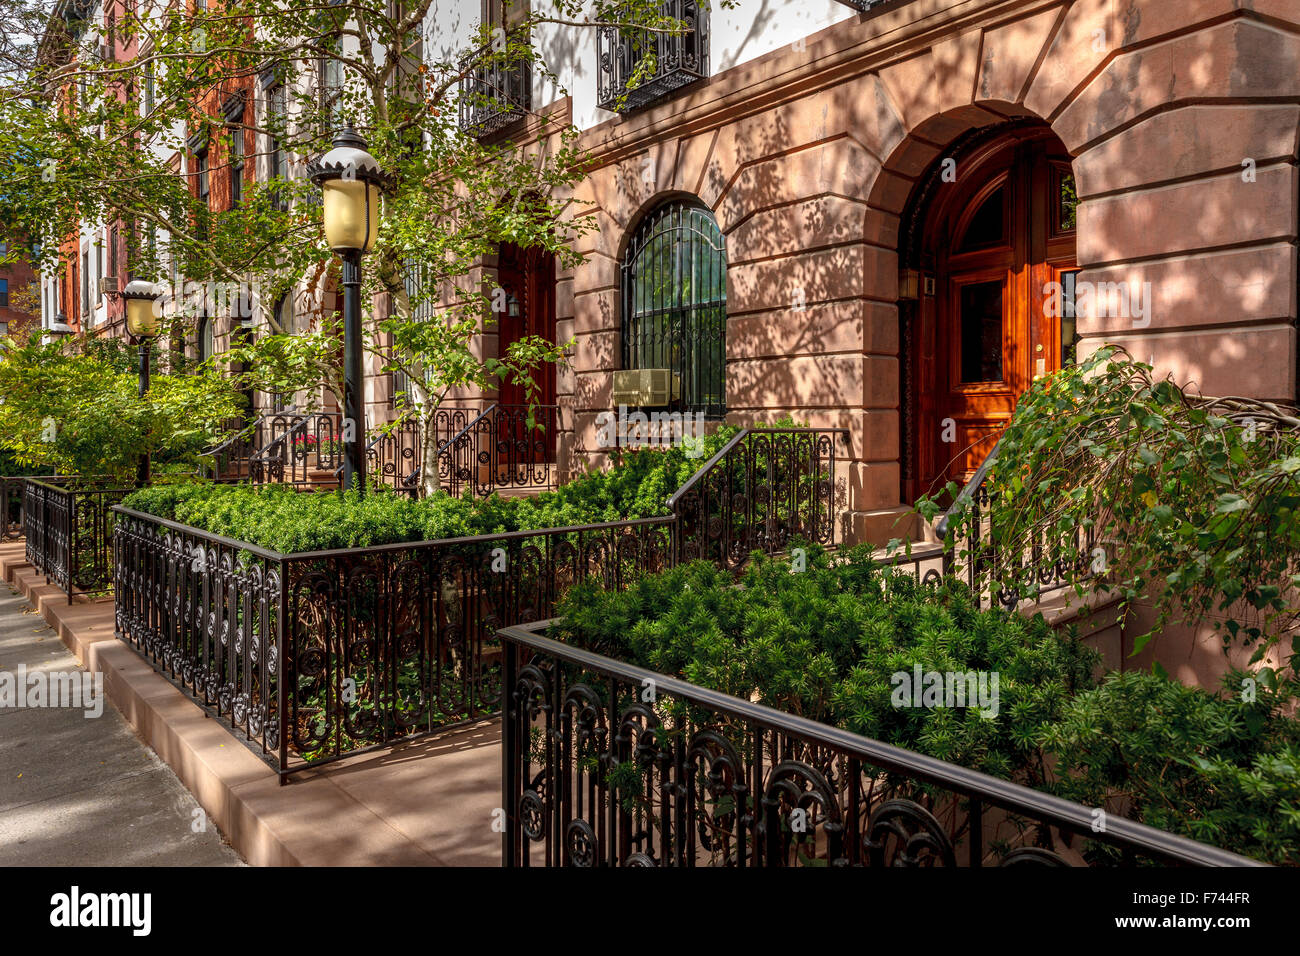 Row of townhouses and their lovely front yards and lampposts. Afternoon light in Chelsea, Manhattan, New York City. Stock Photo